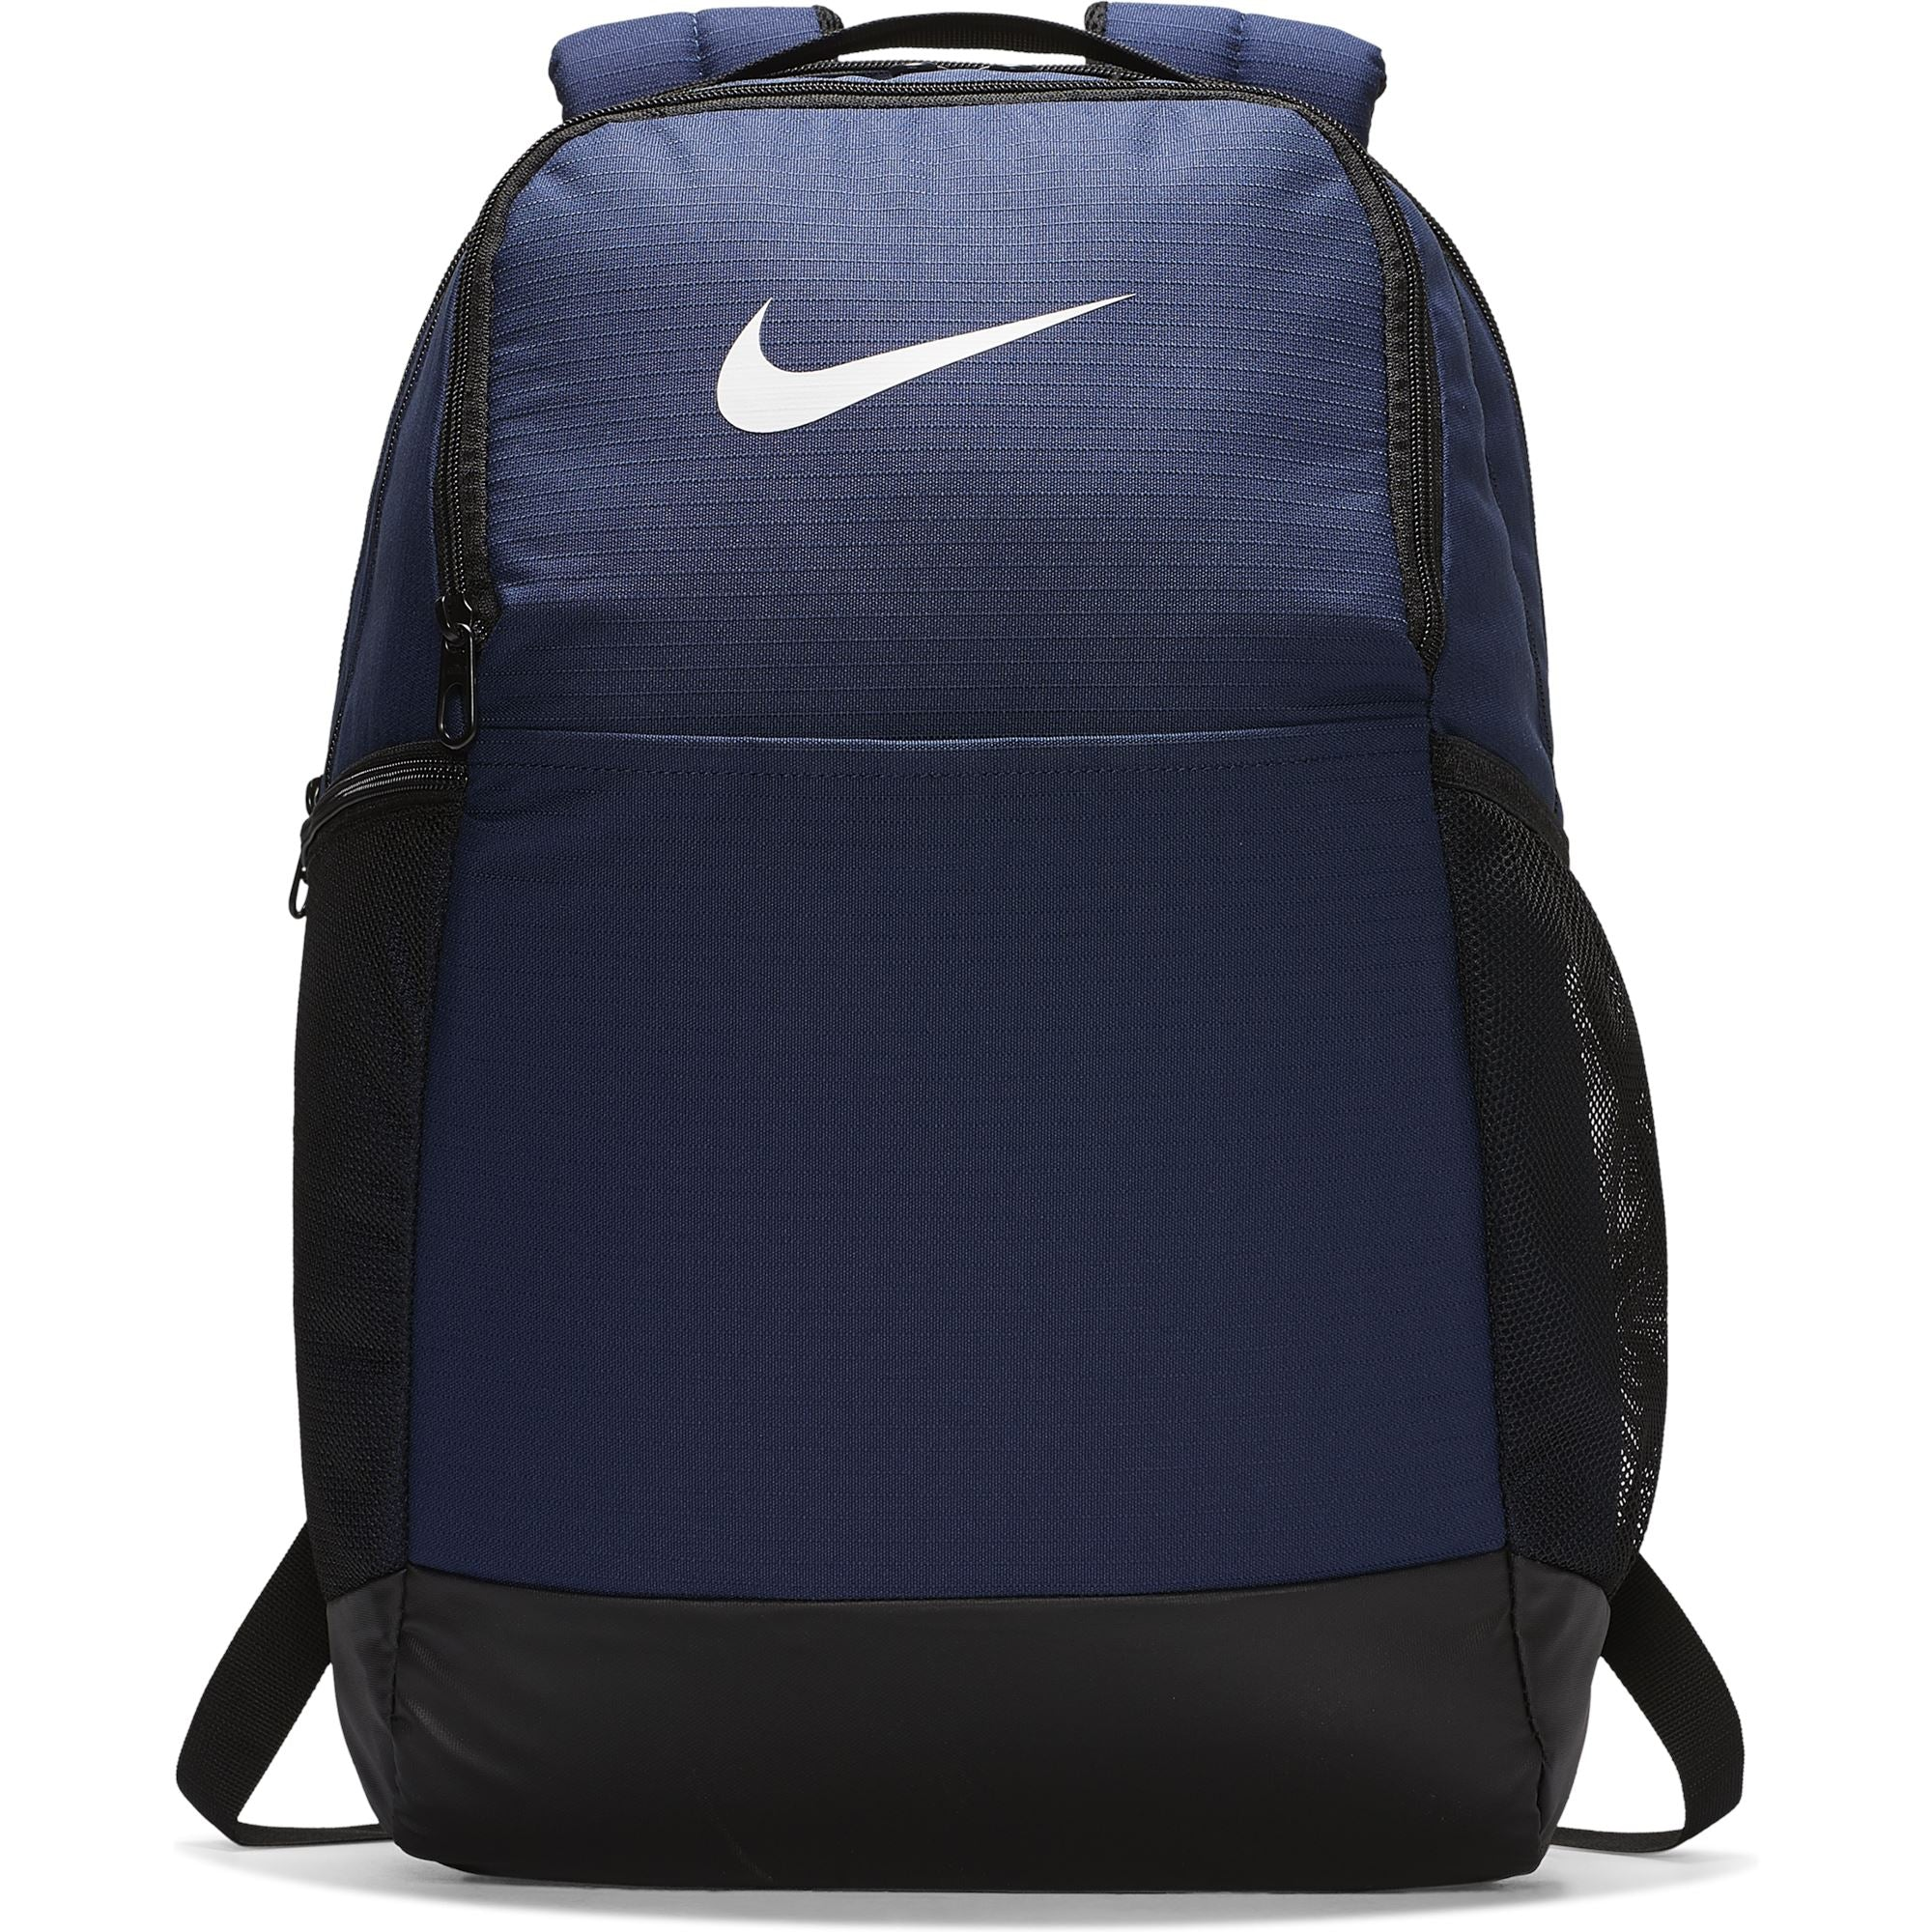 Nike Brasilia M Training Backpack (Medium) - Midnight Navy/Black/White SP-Accessories-Bags Nike